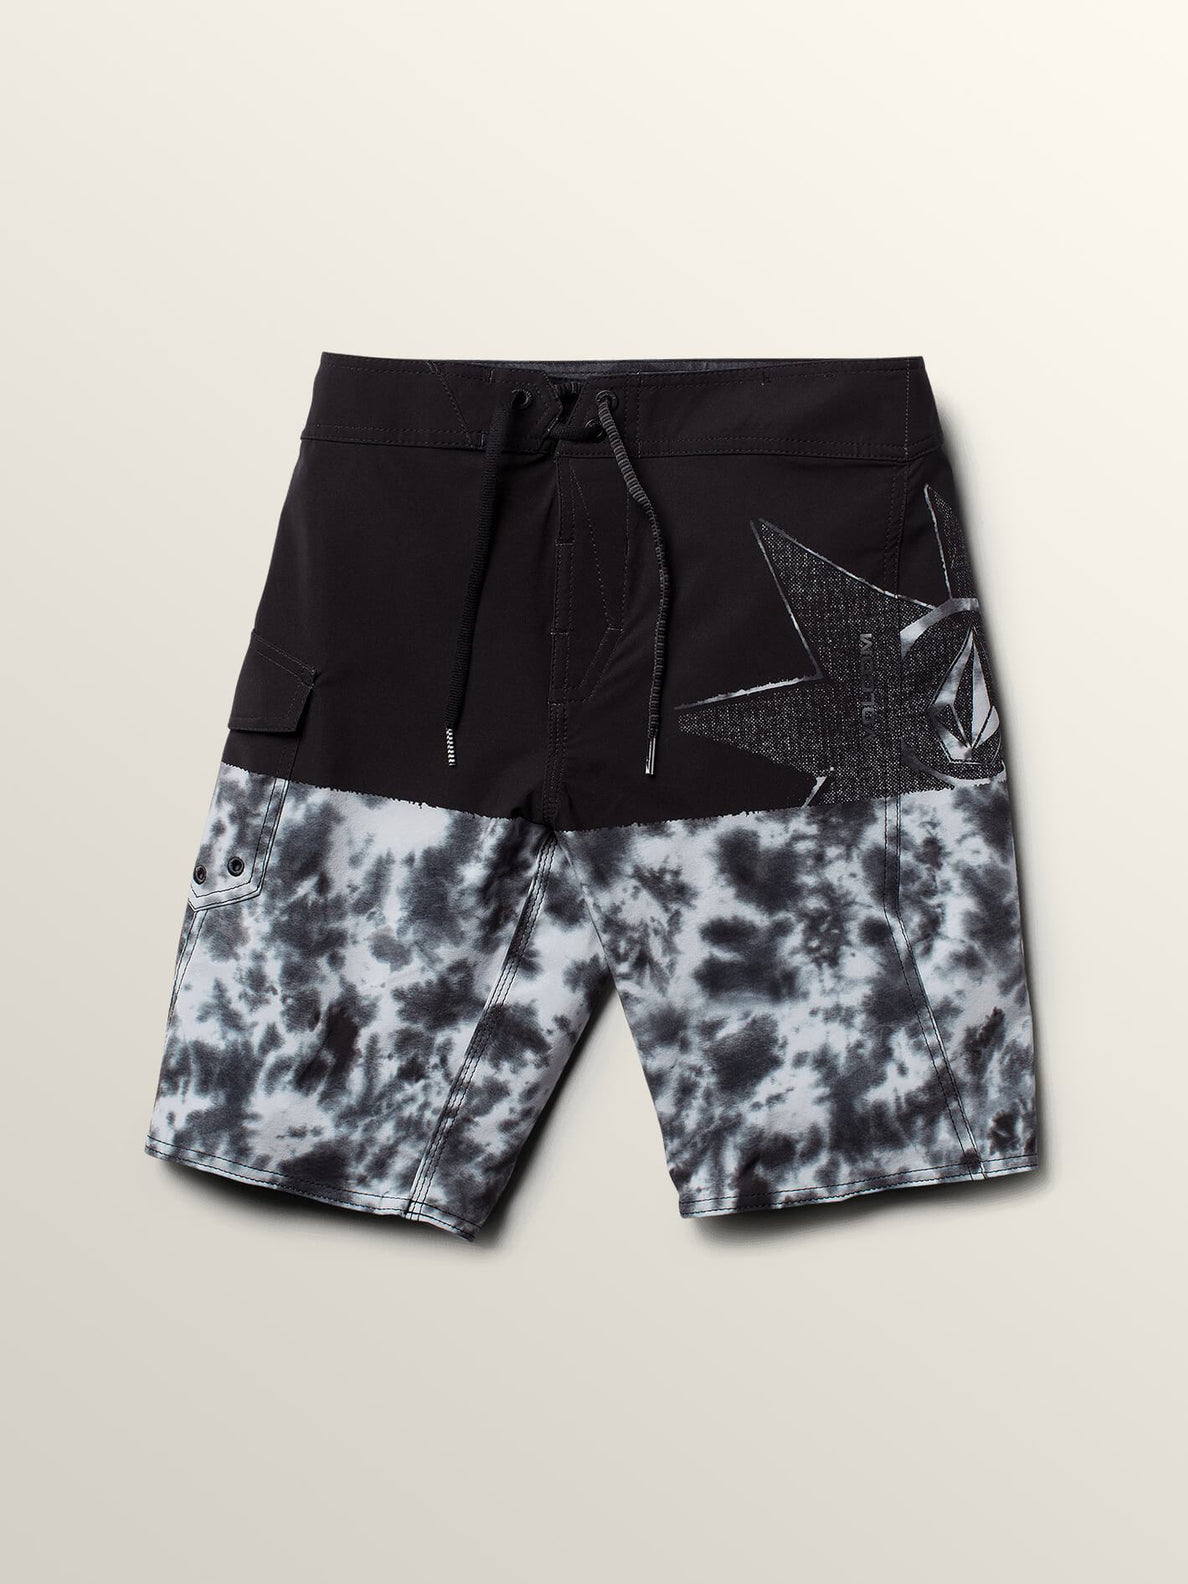 Big Boys Lido Block Mod Boardshorts In Black Combo, Front View